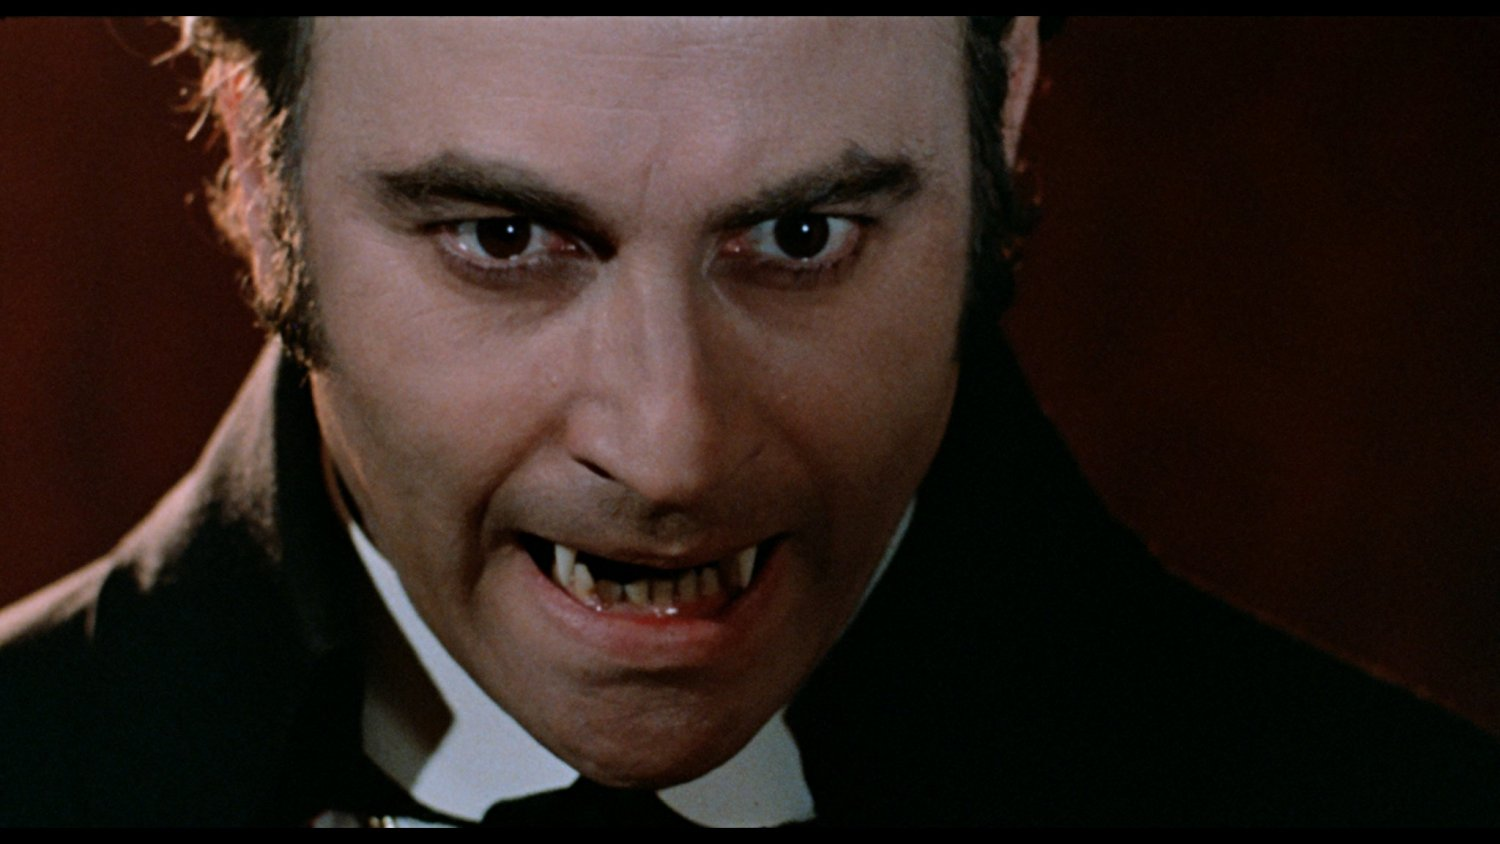 Full Specs Announced for Count Dracula's Great Love Blu-ray